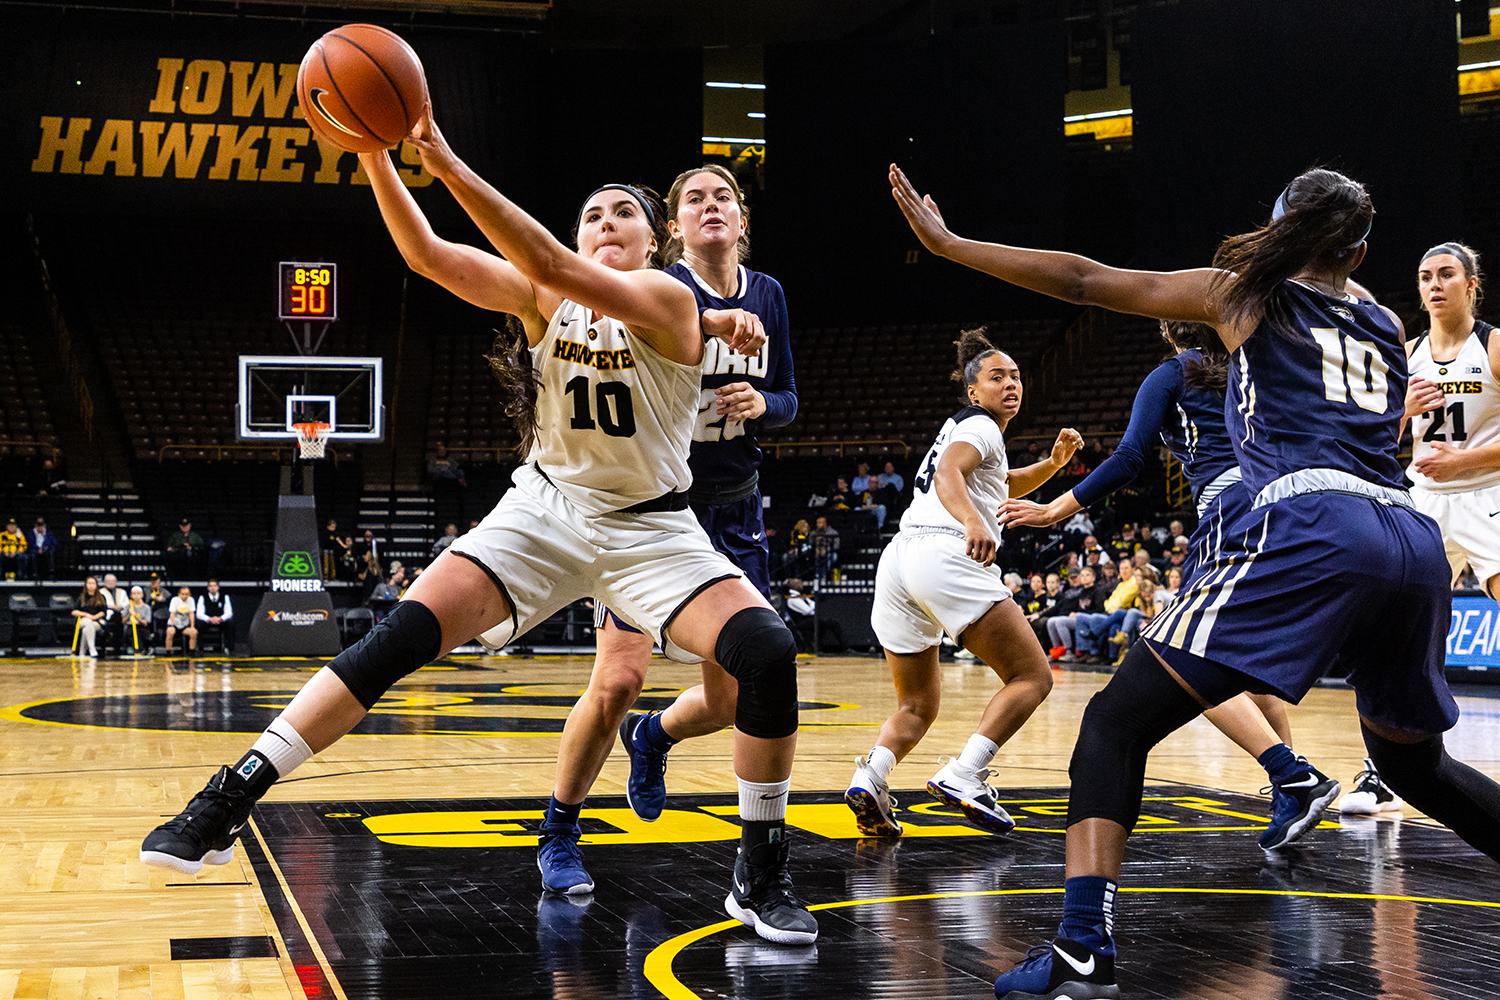 Iowa forward Megan Gustafson (10) fights for an offensive rebound during a women's basketball game against Oral Roberts University on Friday, Nov. 9, 2018. The Hawkeyes defeated the Golden Eagles 90-77.